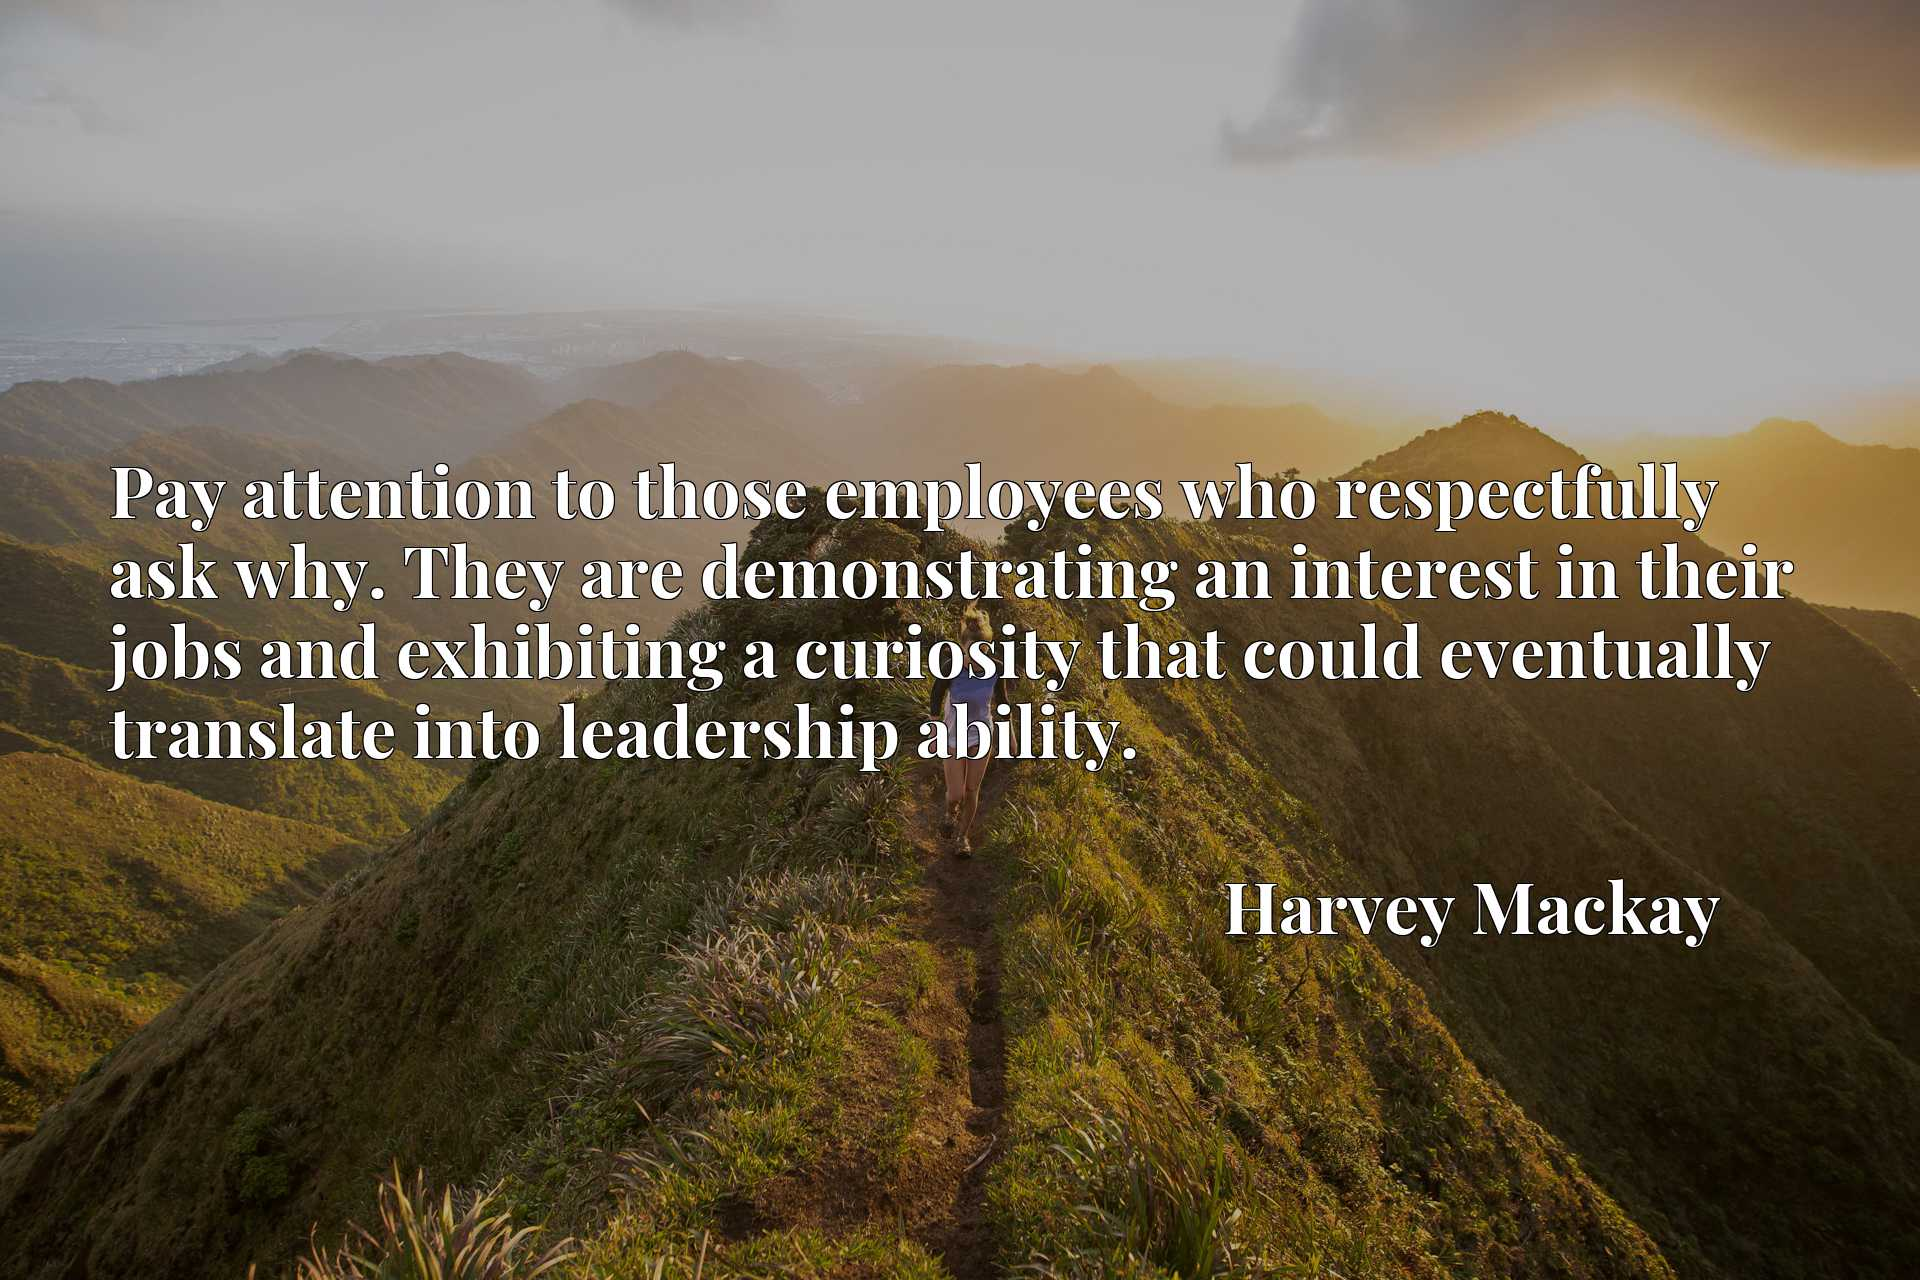 Quote Picture :Pay attention to those employees who respectfully ask why. They are demonstrating an interest in their jobs and exhibiting a curiosity that could eventually translate into leadership ability.